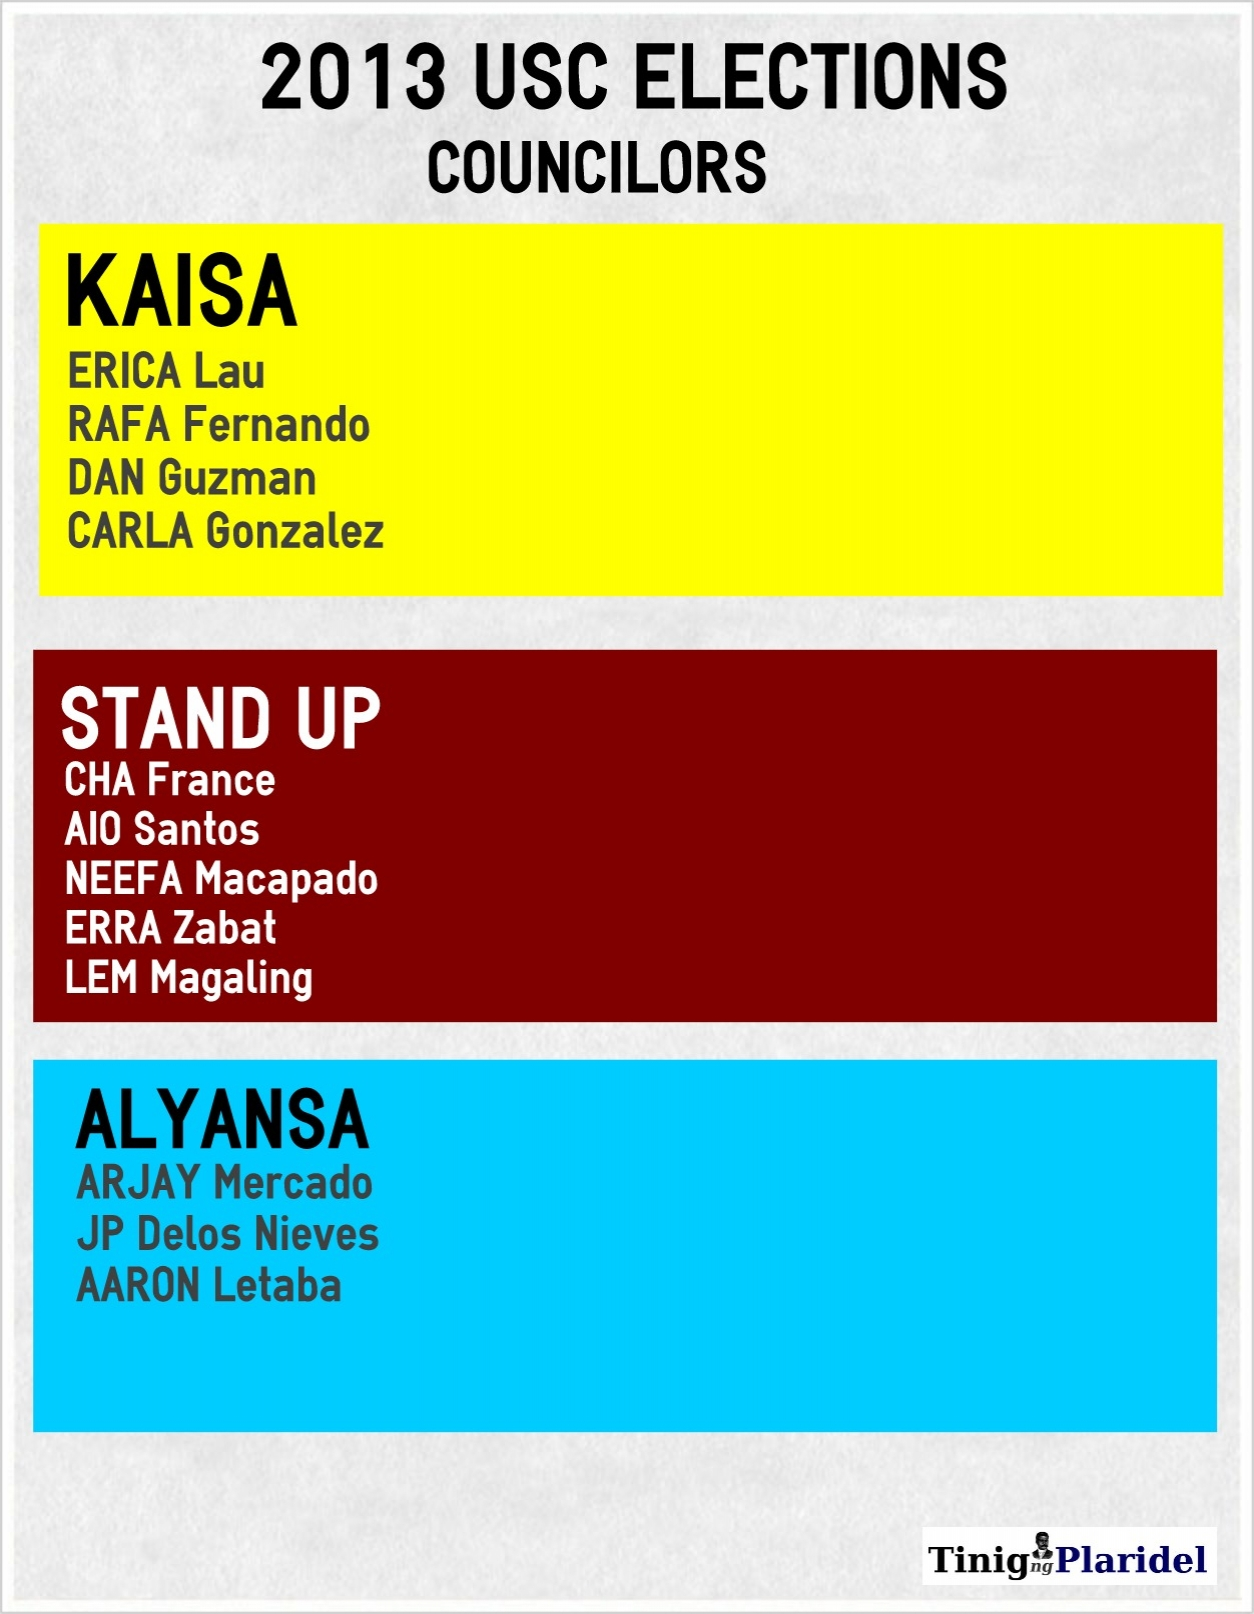 KAISA dominates USC election results